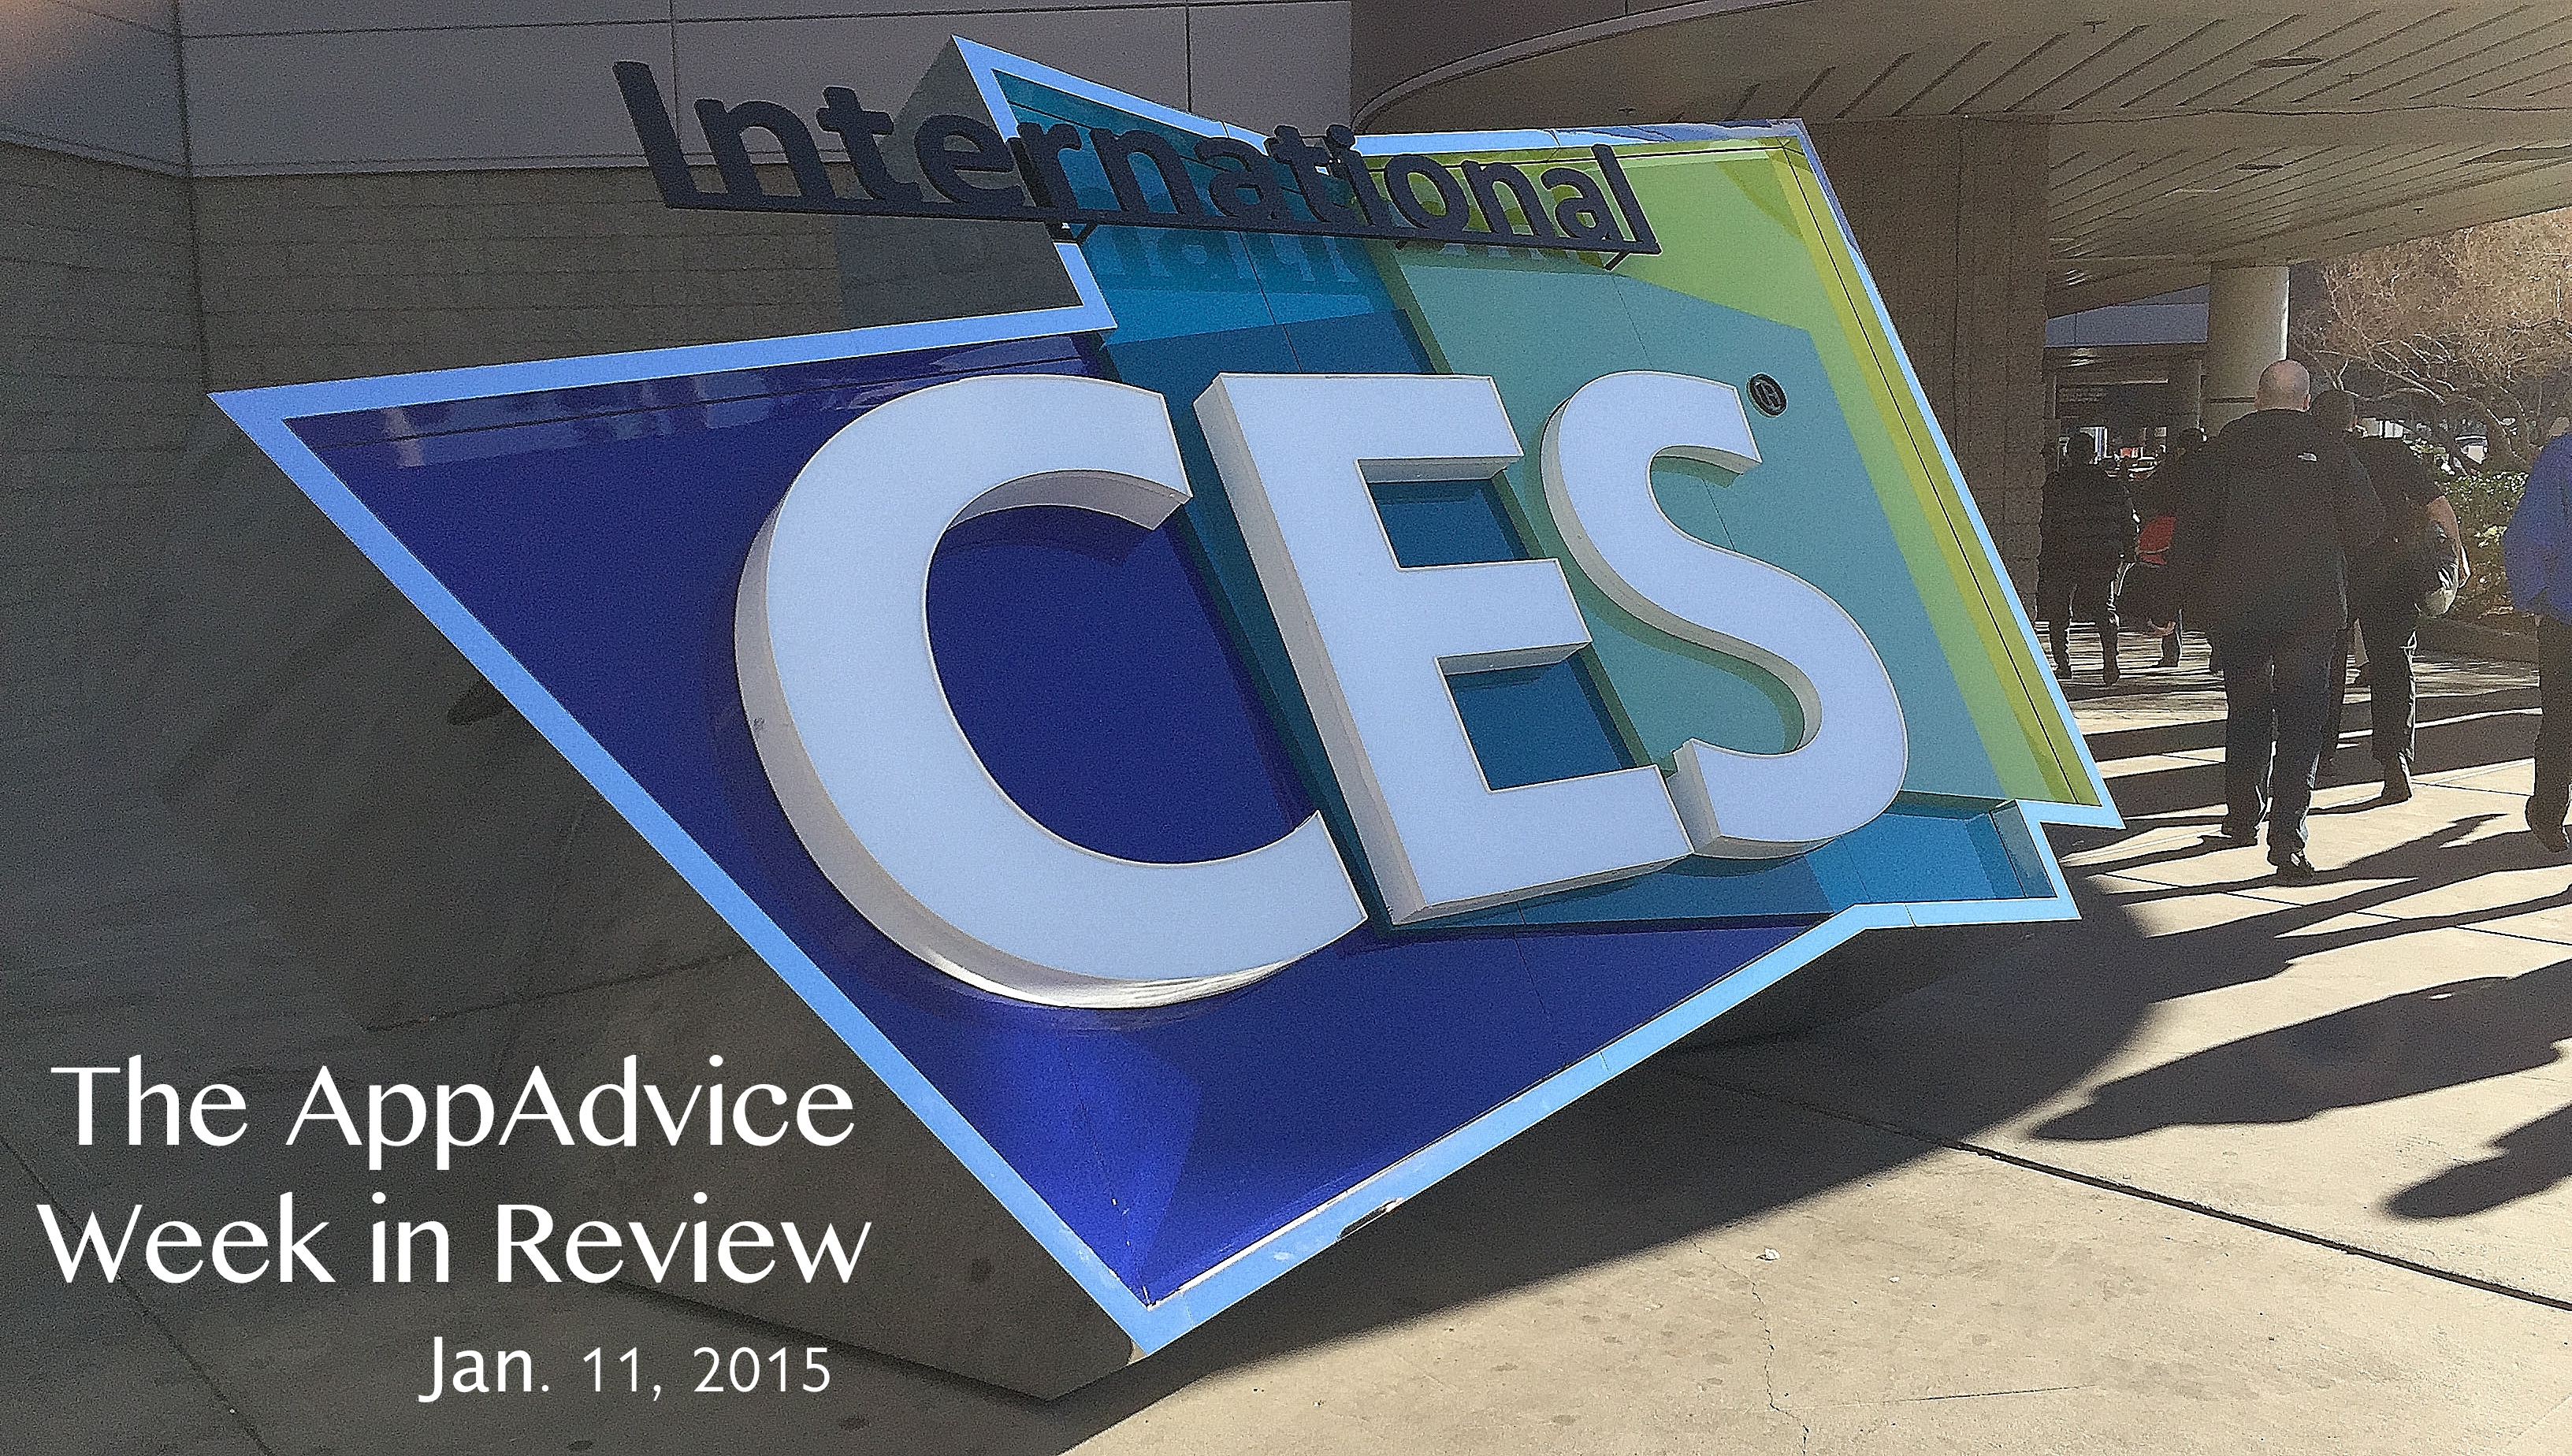 The AppAdvice week in review: Plenty to love at this year's CES, as eyes remain on Apple Watch